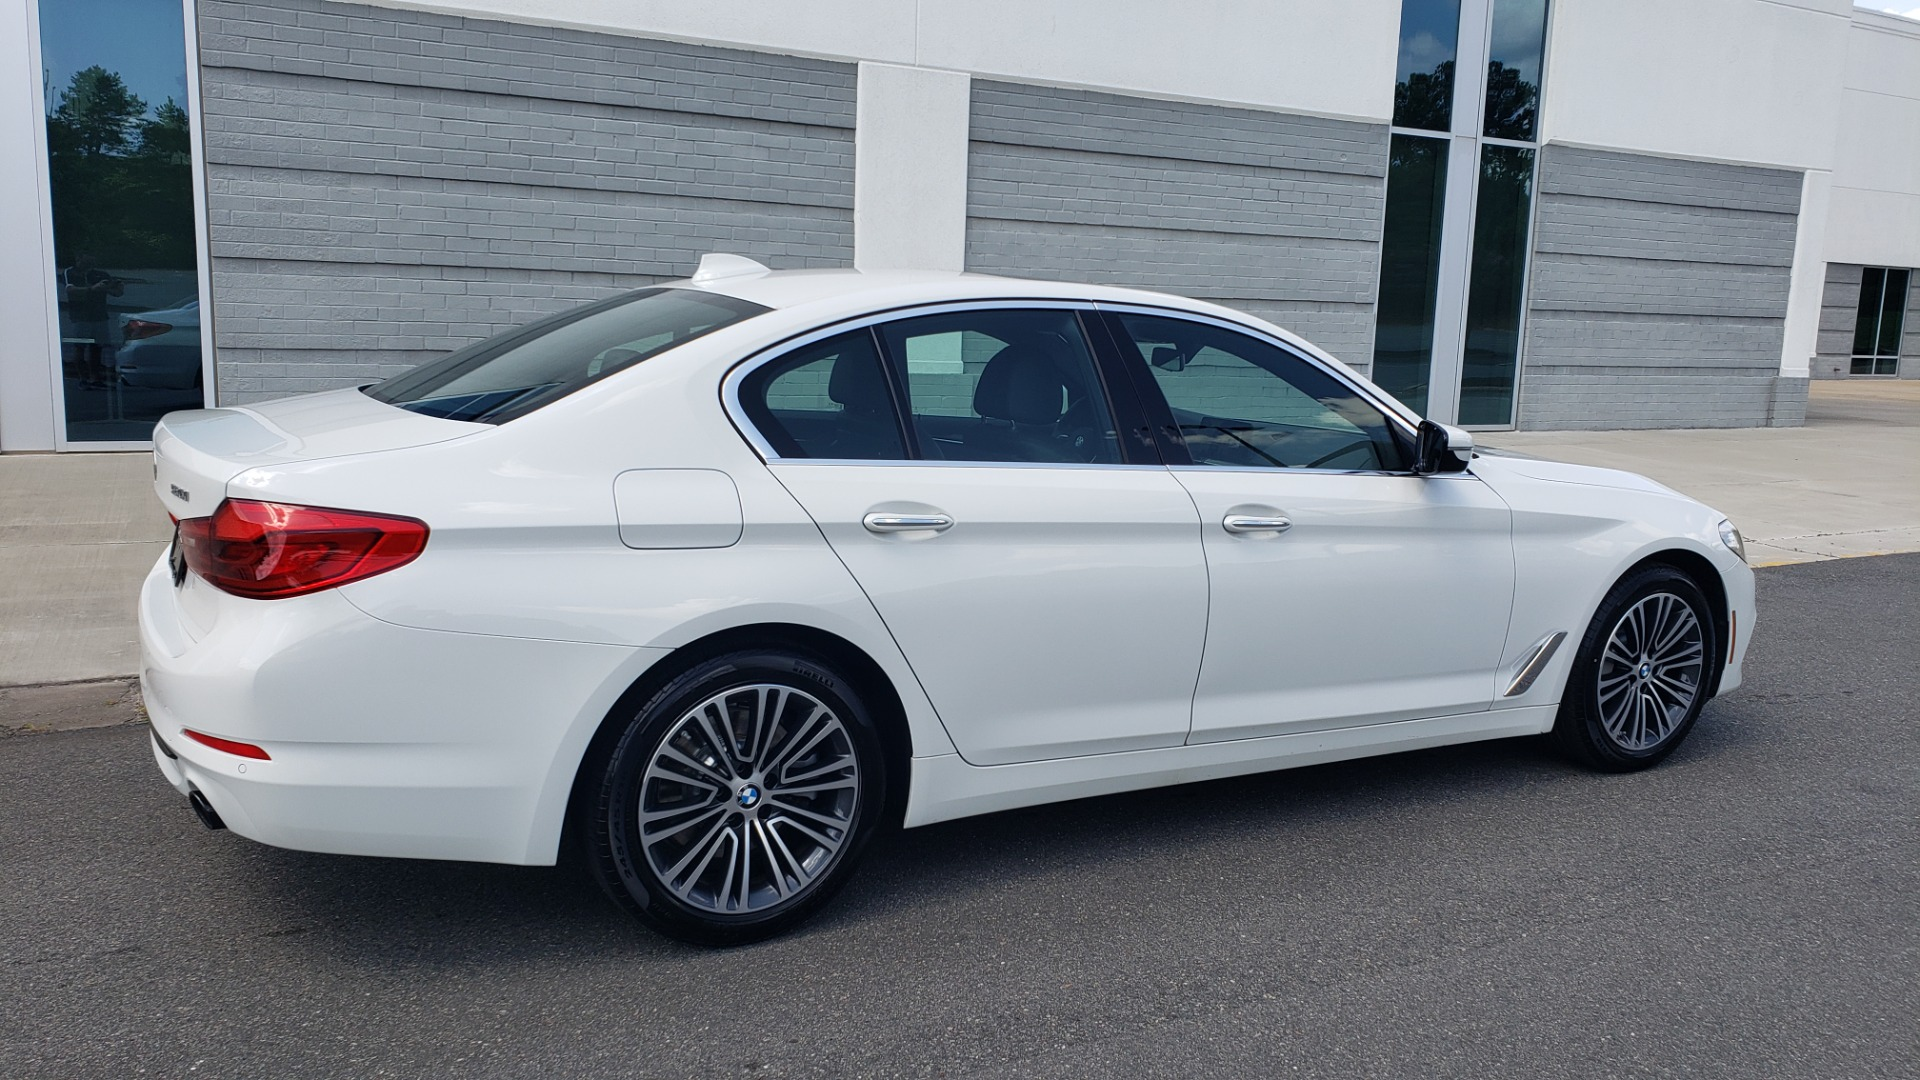 Used 2018 BMW 5 SERIES 530I XDRIVE PREMIUM / PARK ASST / NAV / SUNROOF / REARIEW for sale $37,795 at Formula Imports in Charlotte NC 28227 7